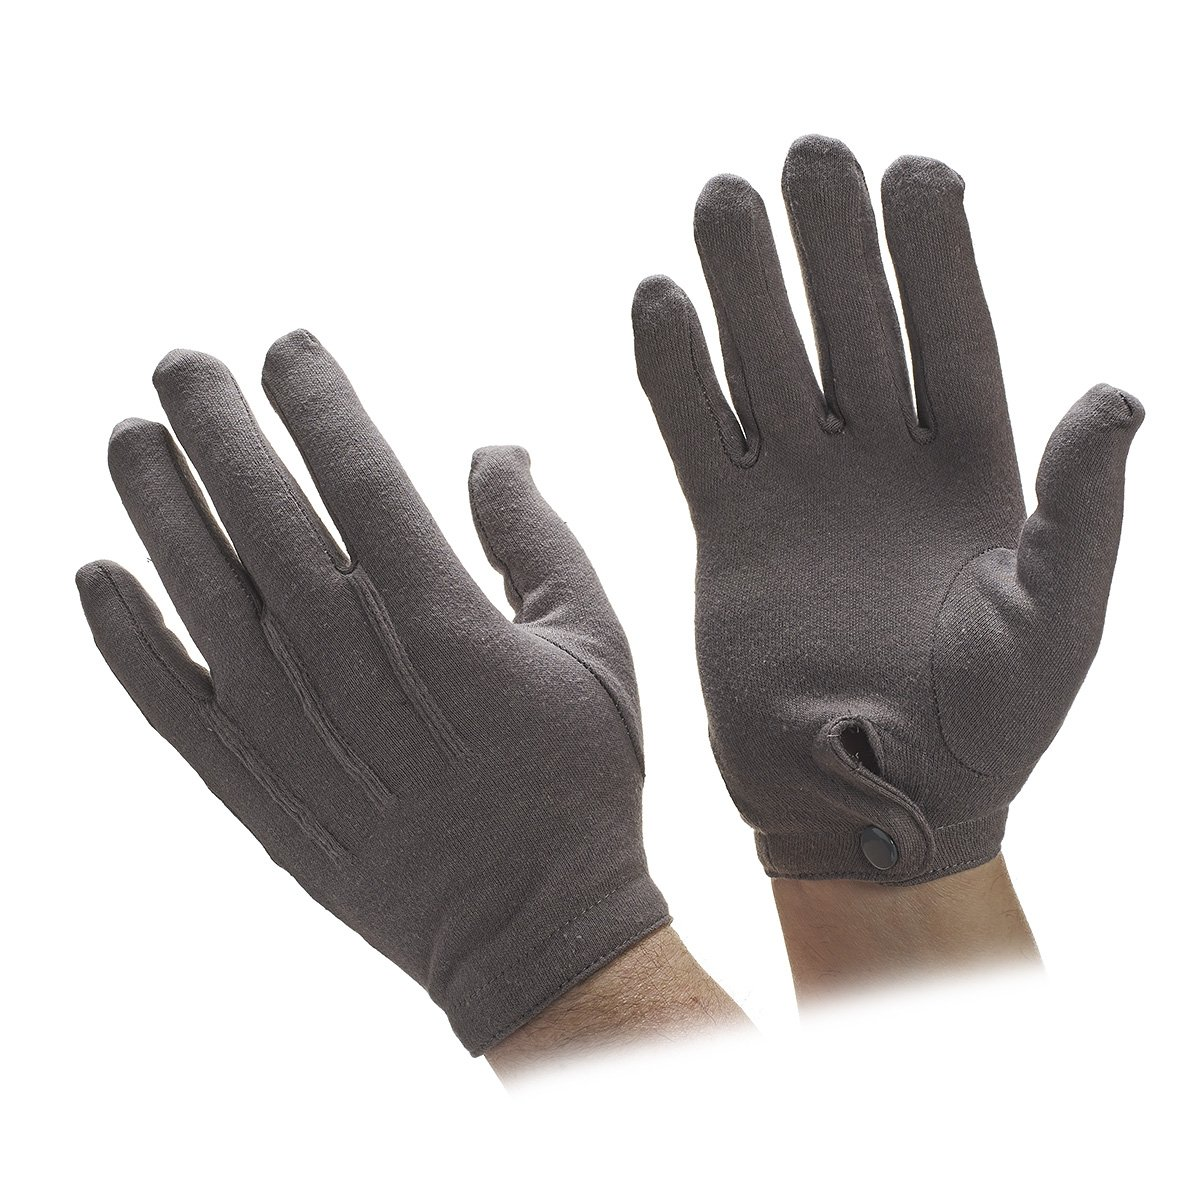 Sold by Dozen Pair Mens Large with Snap Closure Gray Cotton Gloves